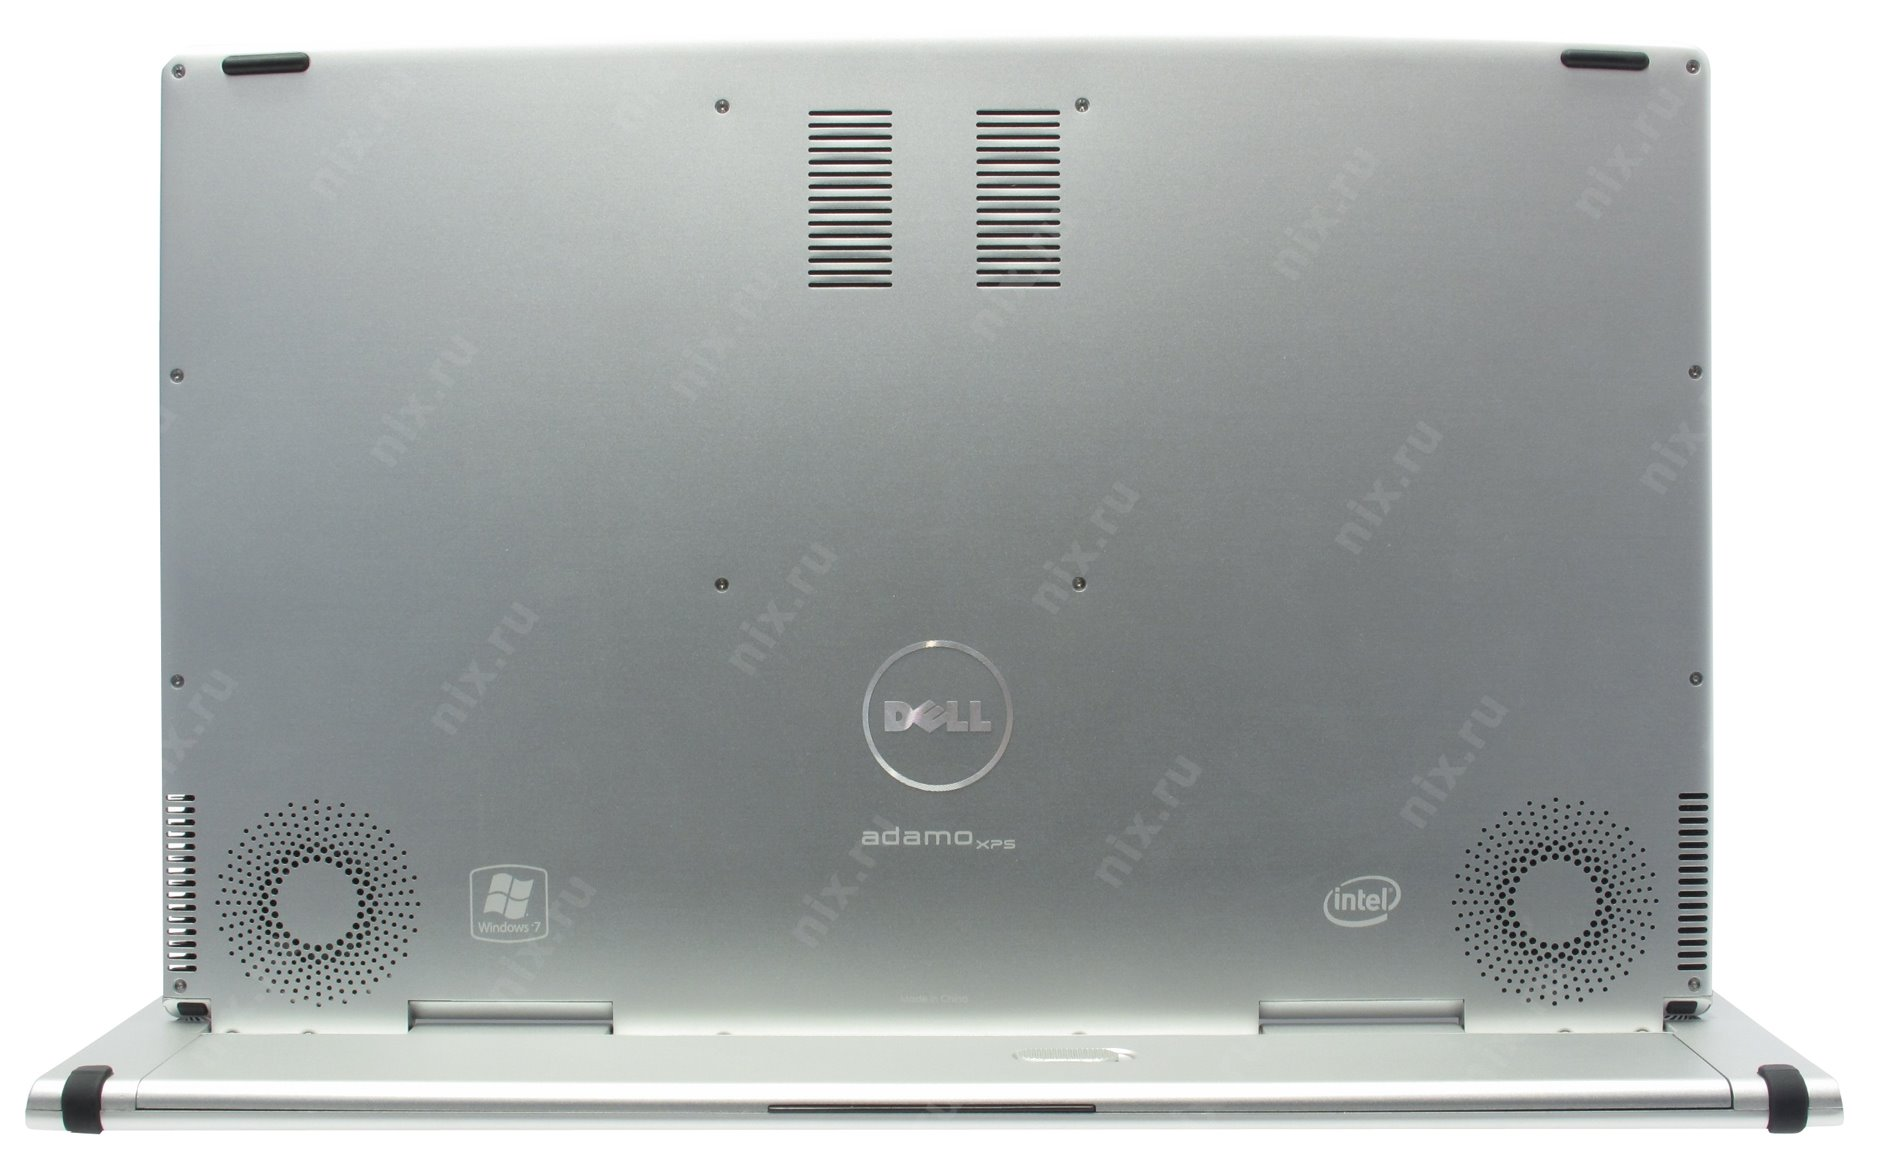 DELL ADAMO 13 INTEL DISPLAY DRIVER